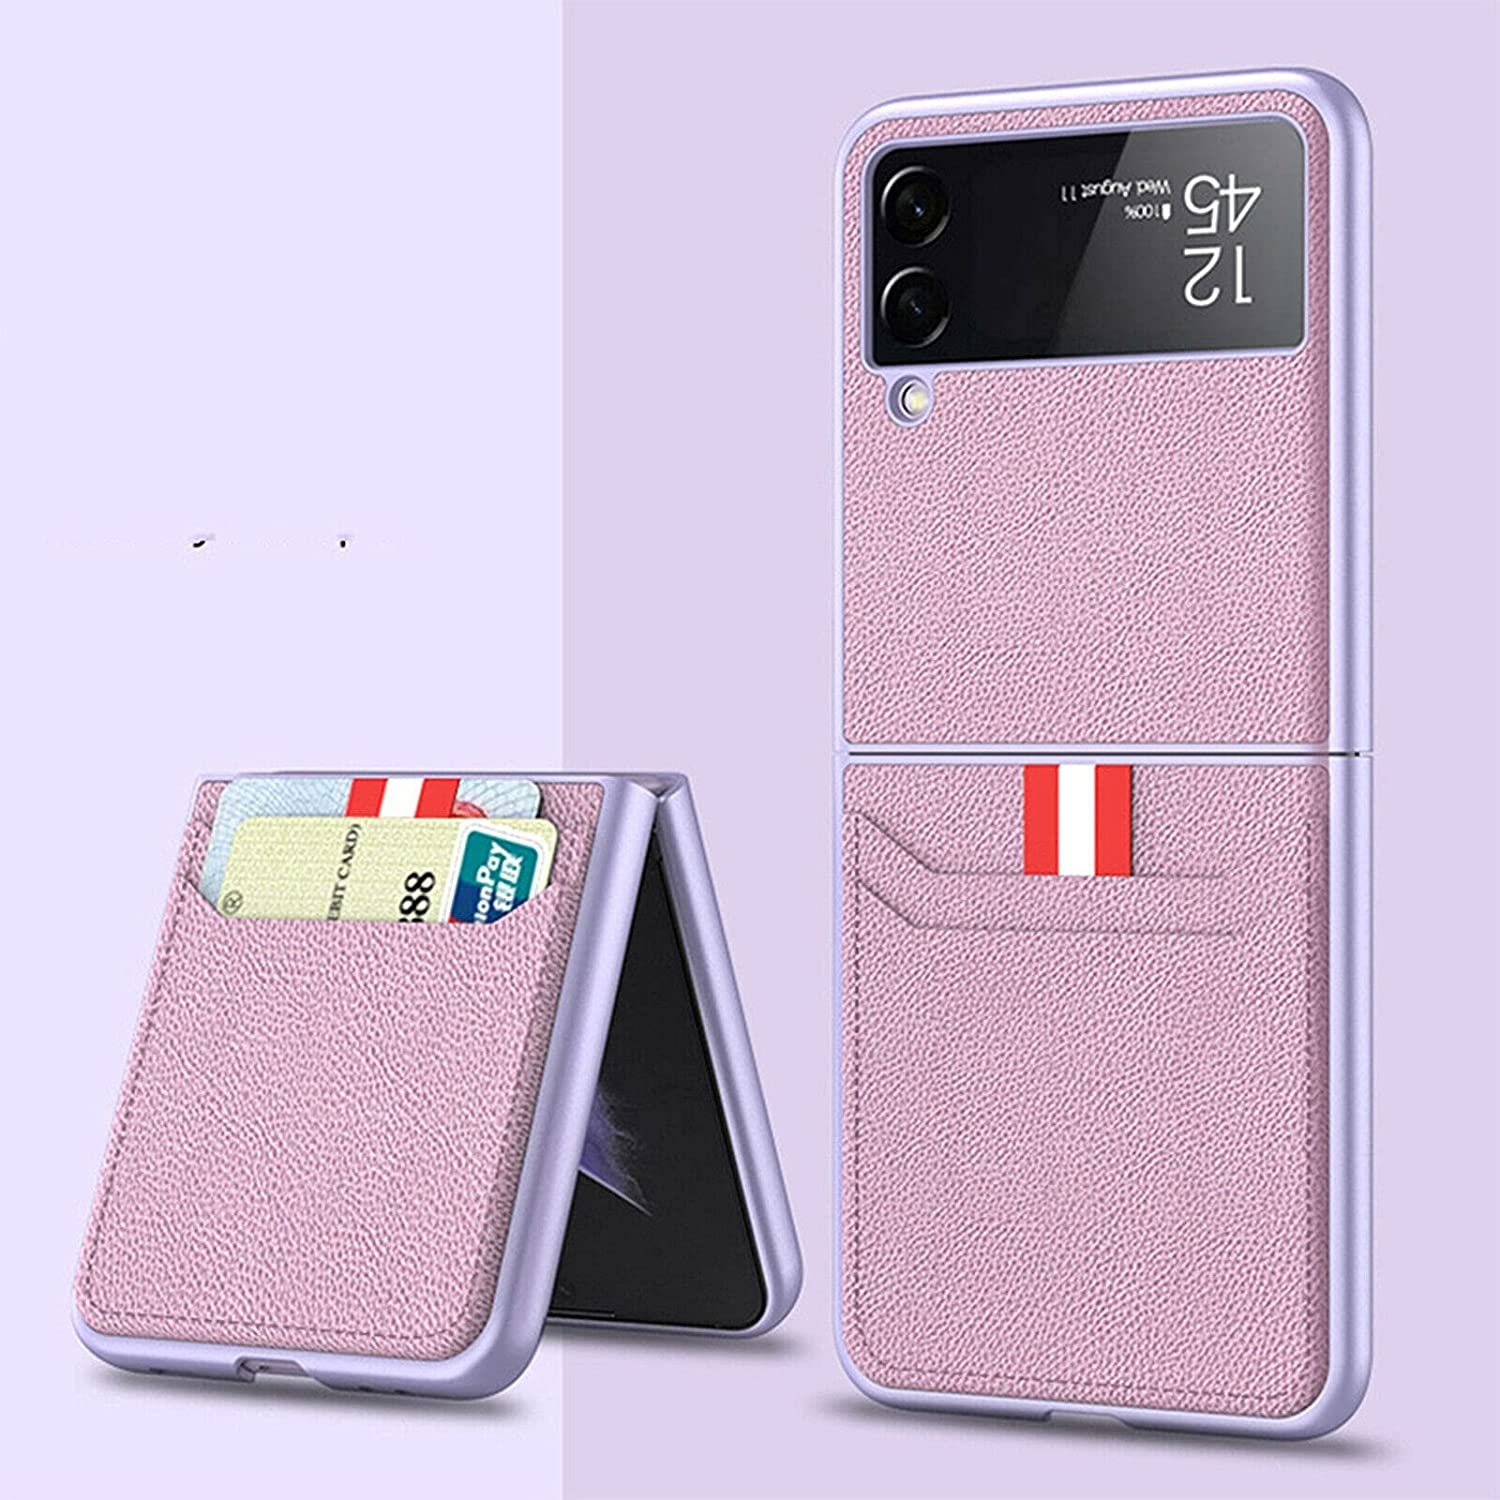 Leather Wallet Card Holder Phone Case for Samsung Galaxy Z Flip 3 5G, Leather Lightweight Cover Full Protective Cases with Wallet Card